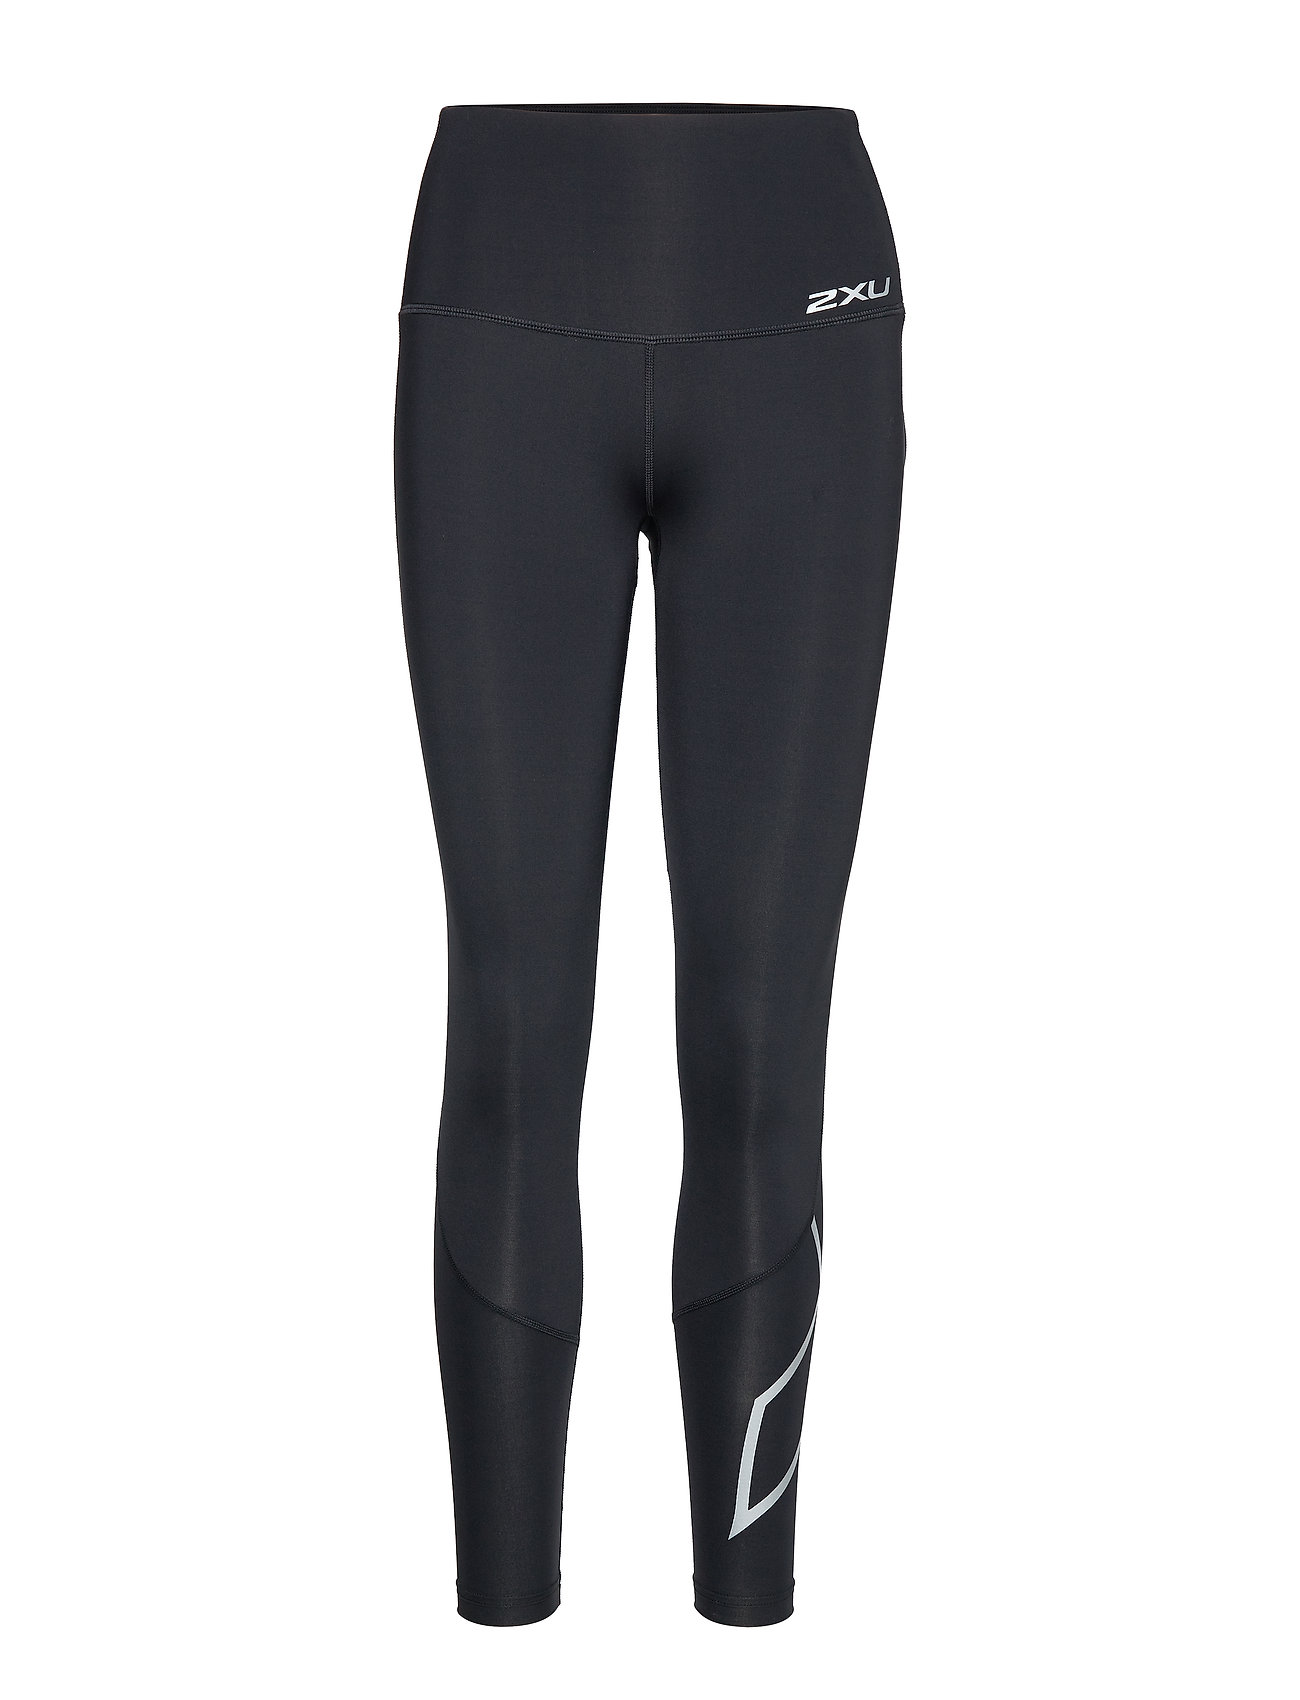 2XU Hi-Rise Compression Tights-W - BLACK/SILVER X LOGO